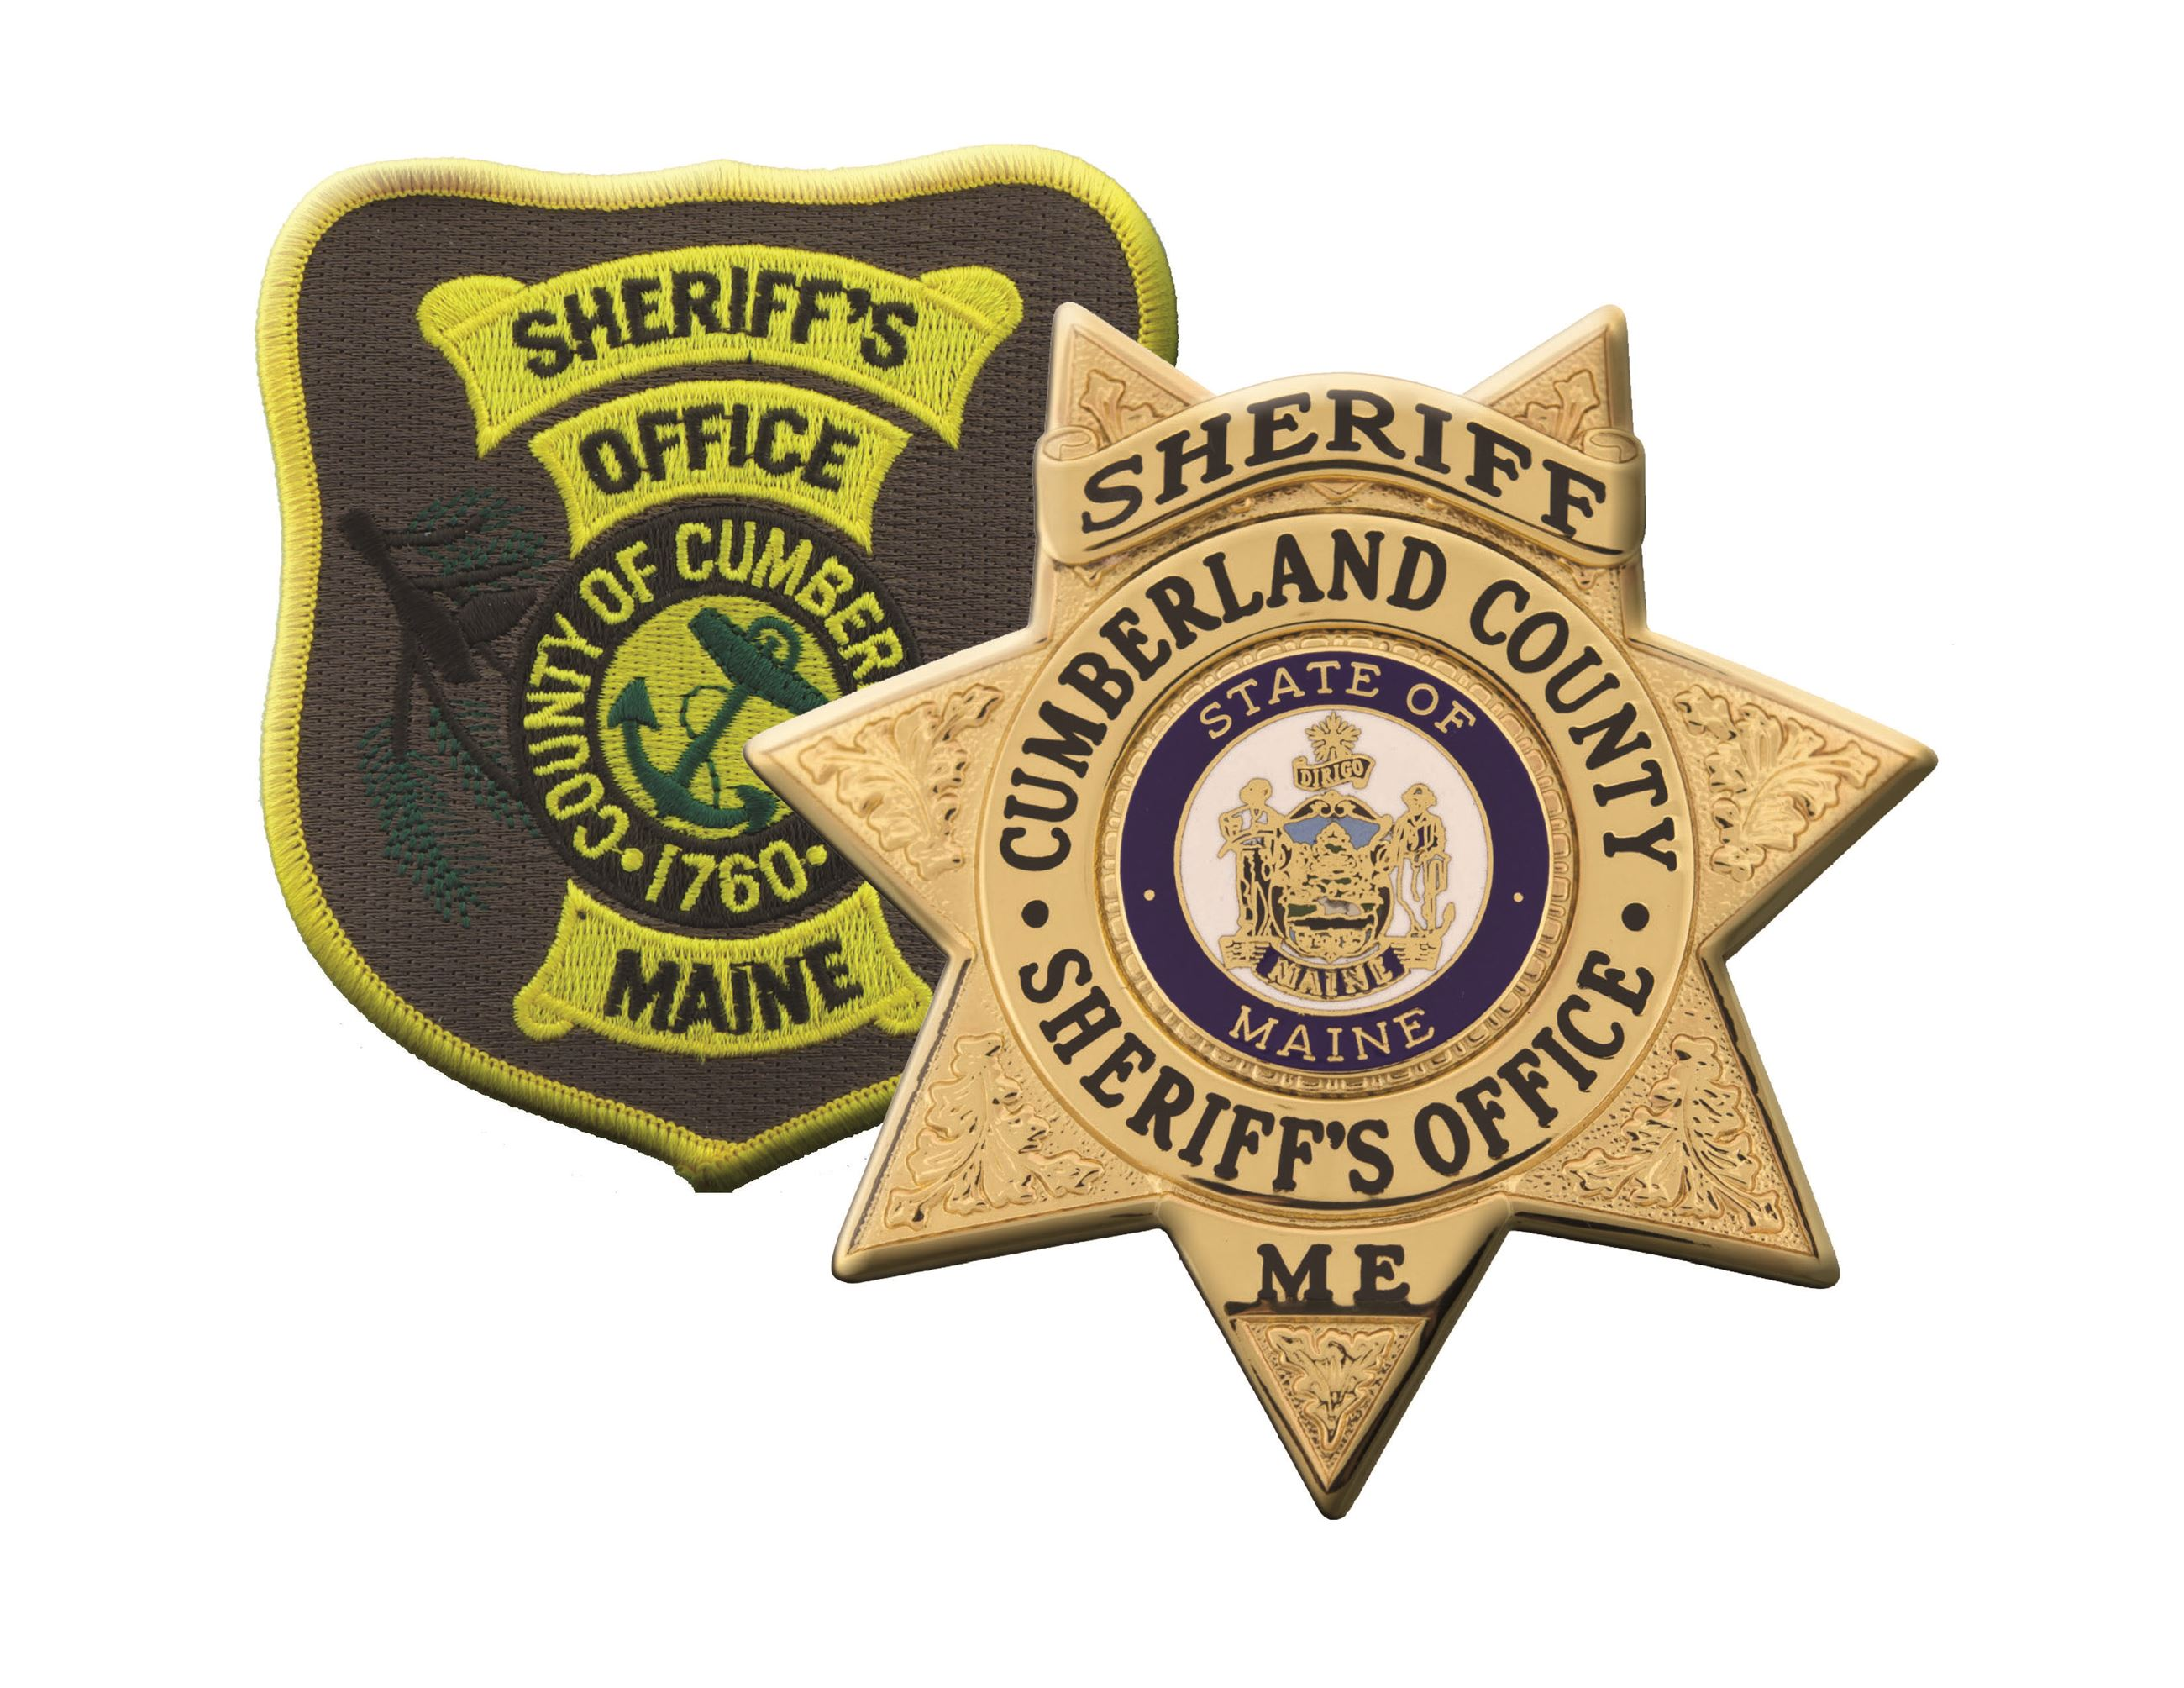 Sheriff's Office Patch and Badge